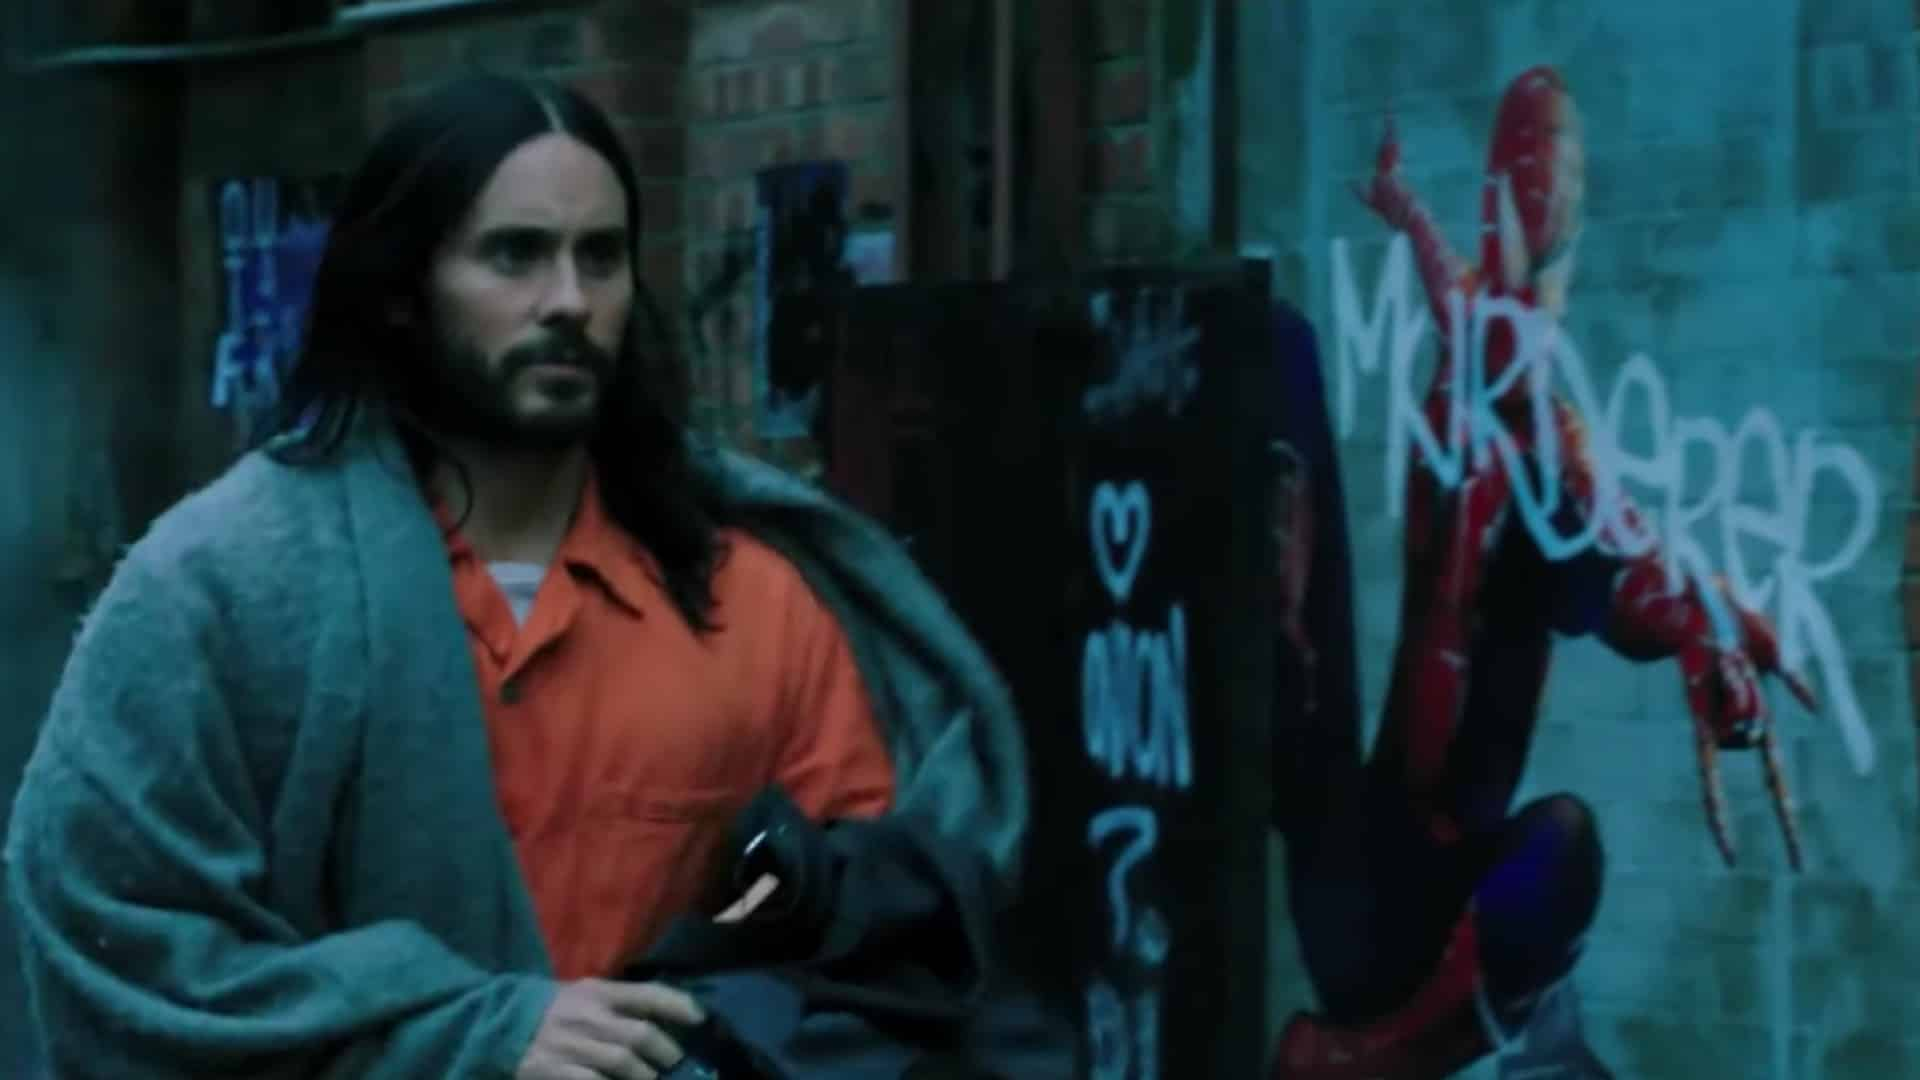 Know the suspense of hidden connection between Morbius and MCU